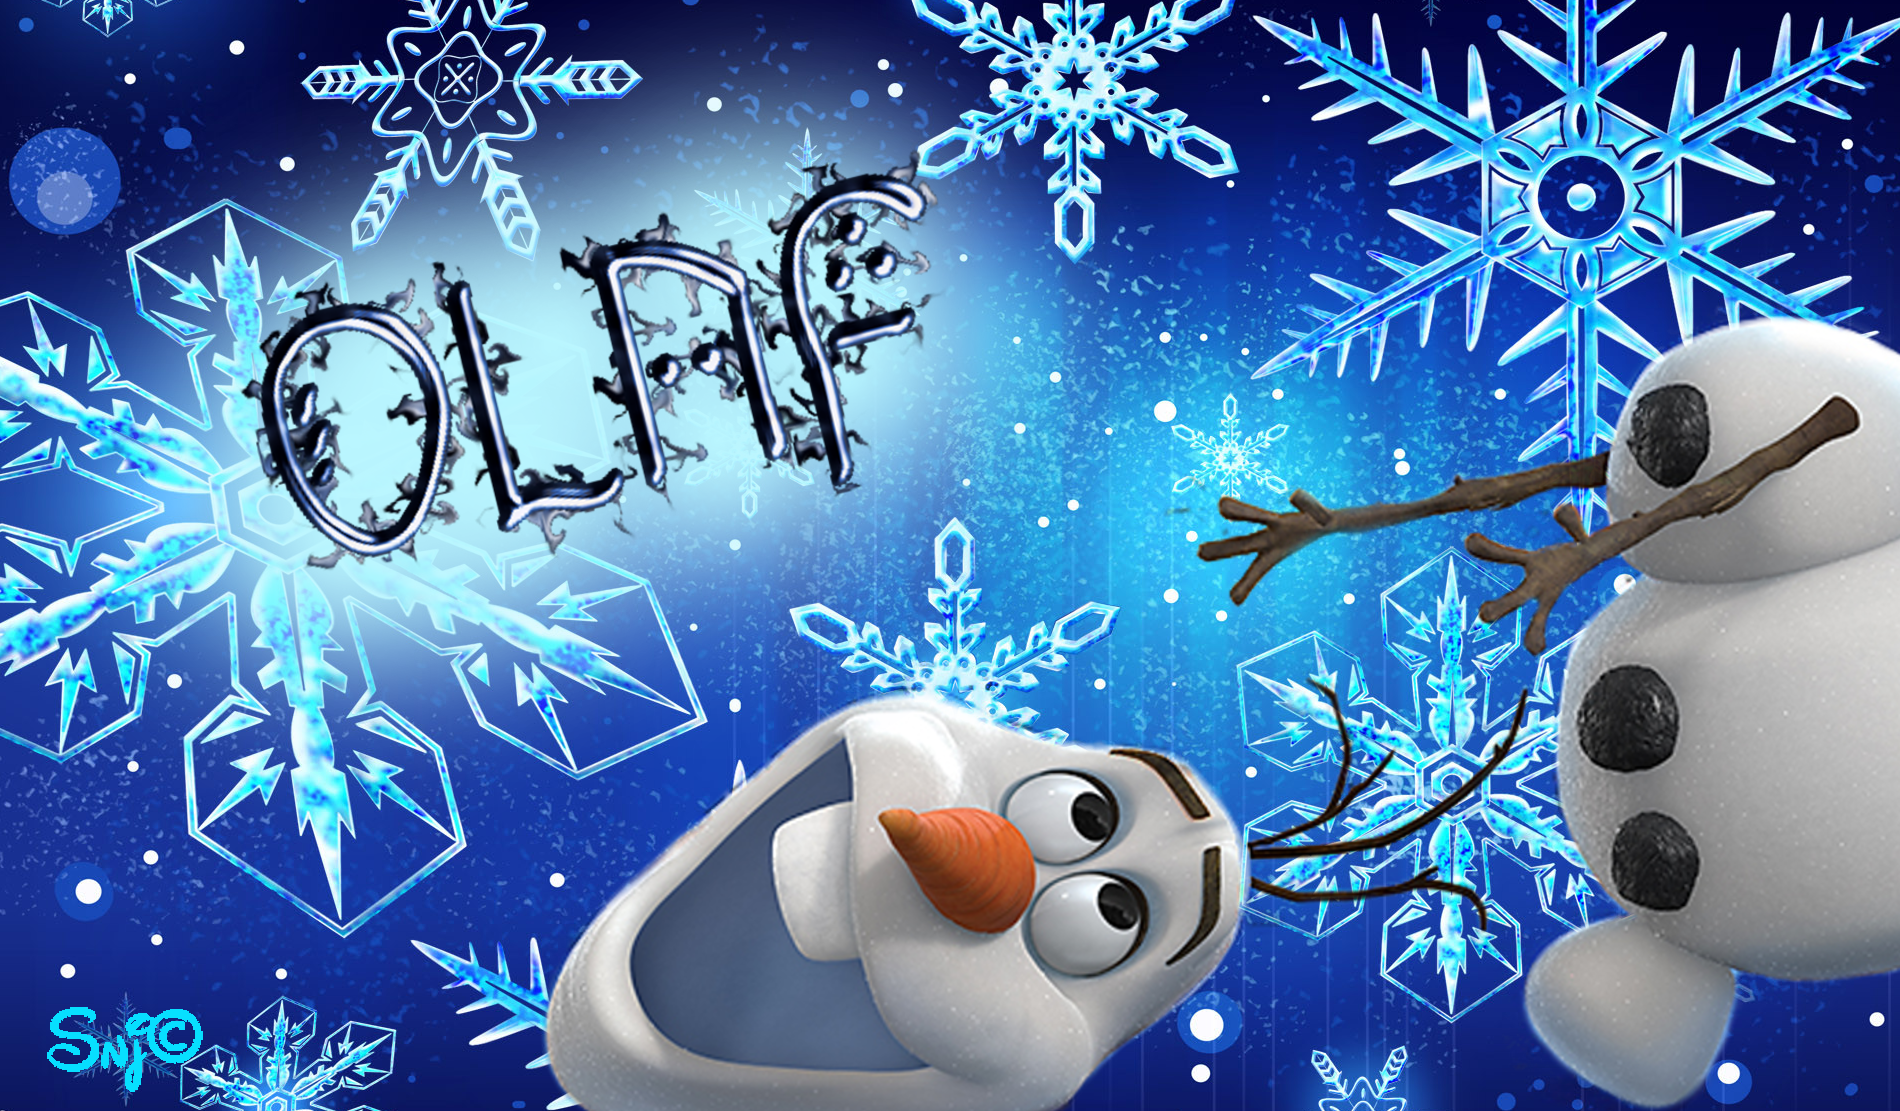 Olaf Attack Wallpaper by Snappette Smurfette 1900x1111